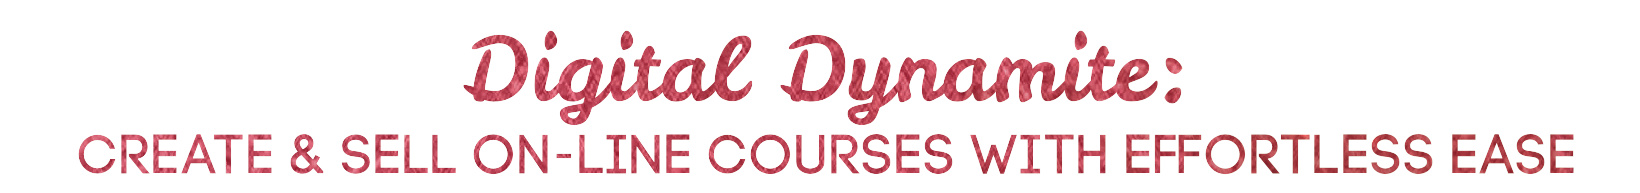 Digital Dynamite: Create & Sell On-Line Courses With Effortless Ease